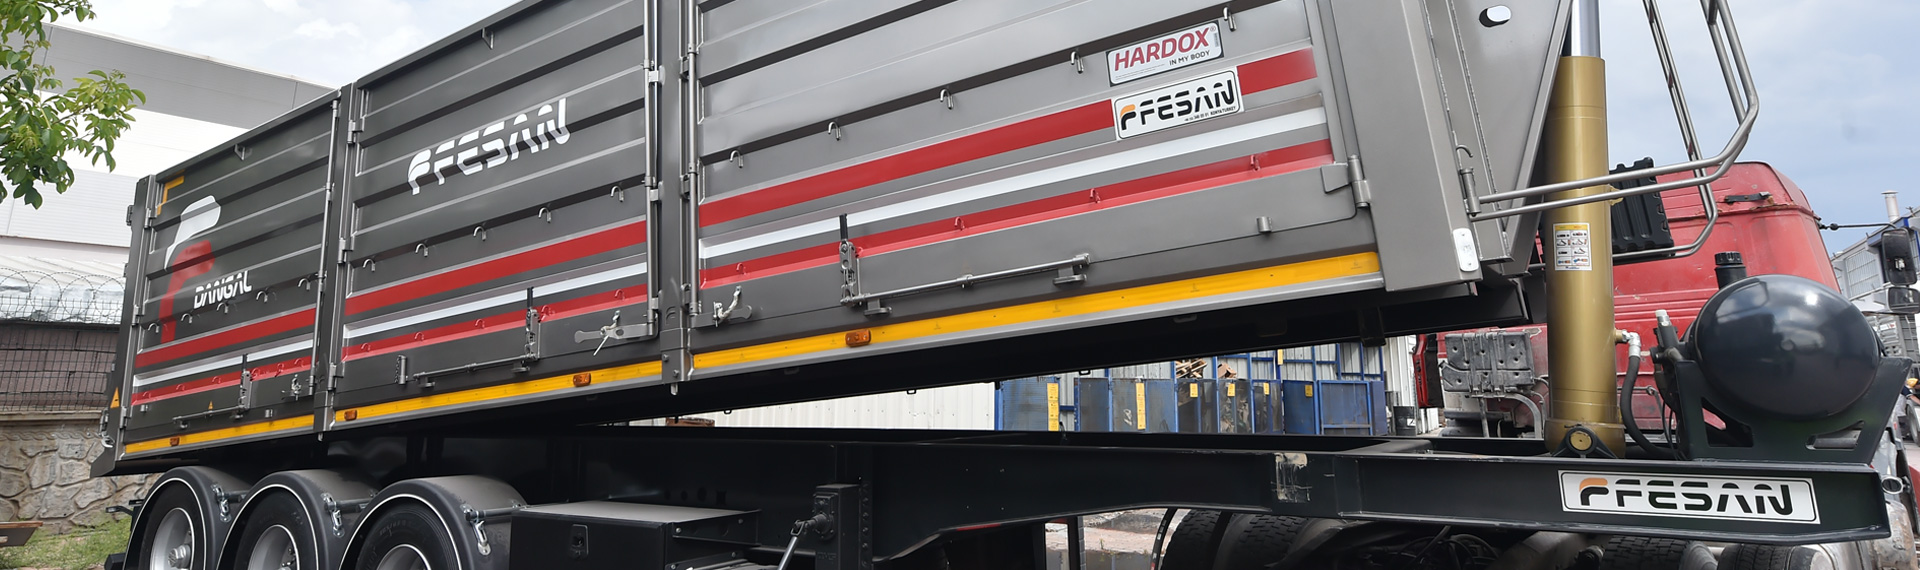 A shiny gray and red semitrailer dumper with the Fesan and Hardox® in My Body logos.